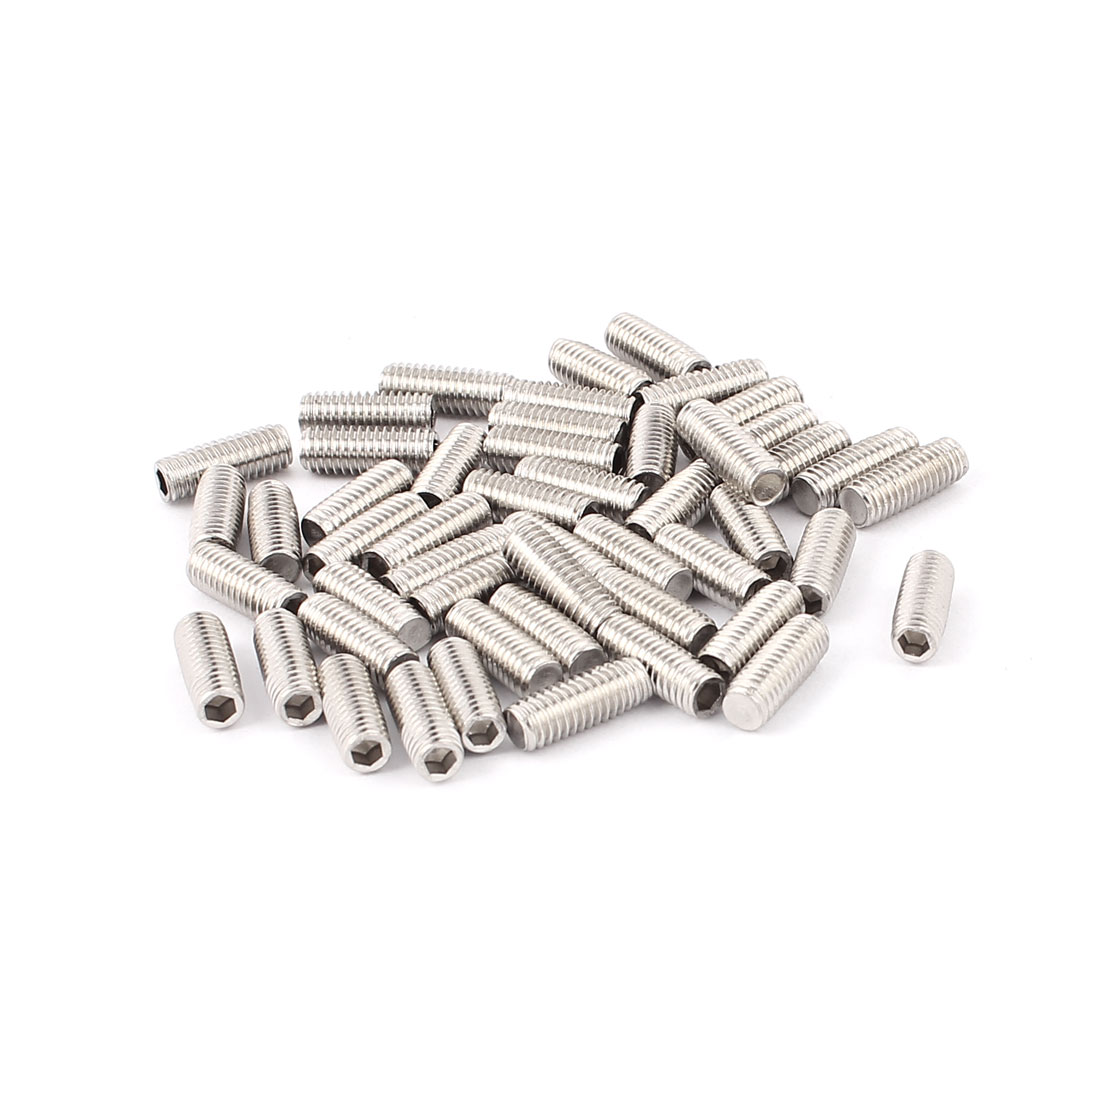 50pcs 304 Stainless Steel M6 Flat Point Hex Socket Grub Set Screws